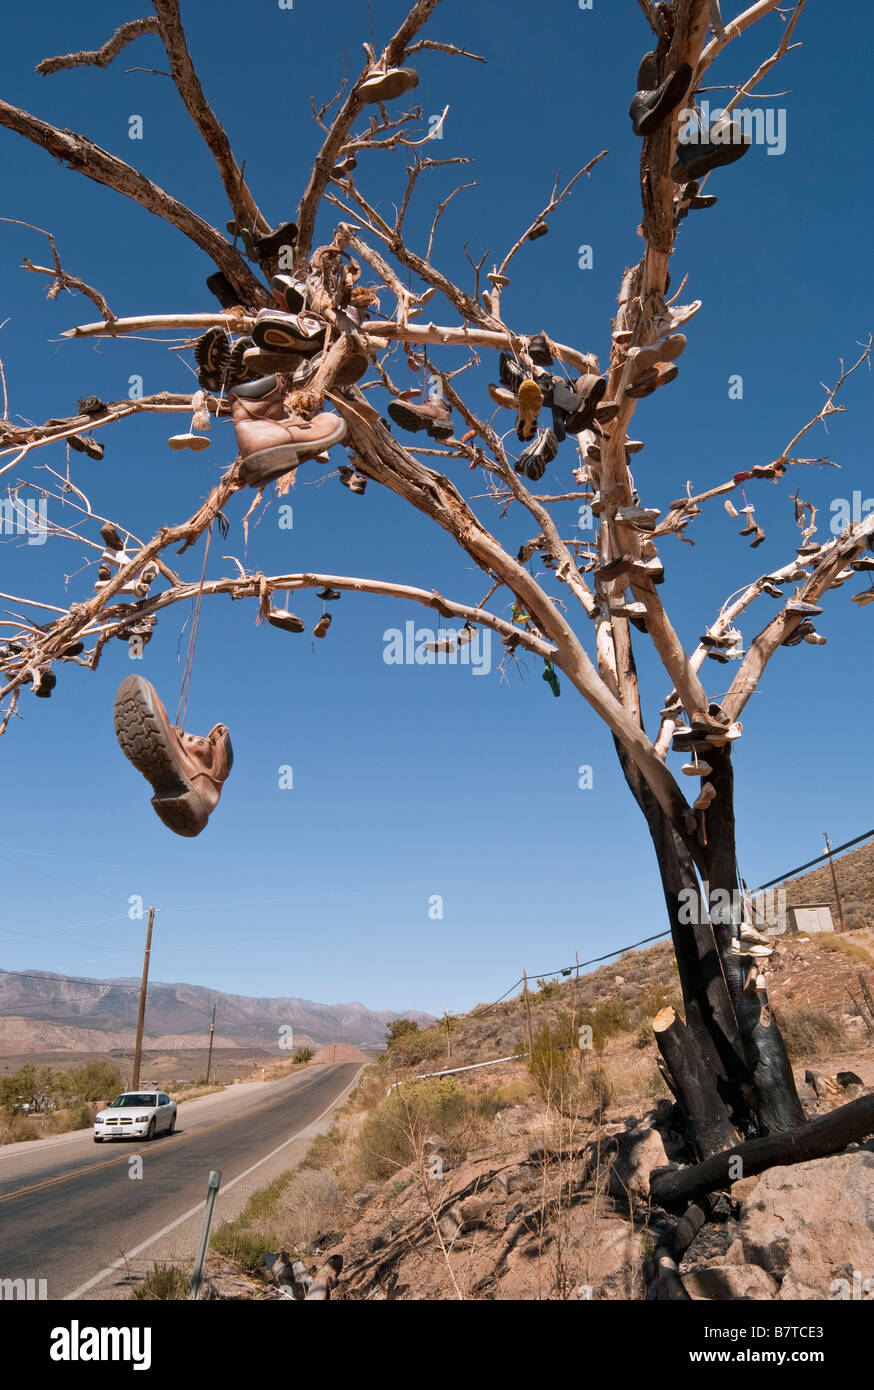 Shoe tree shoes hanging in tree Southern Utah USA - Stock Image